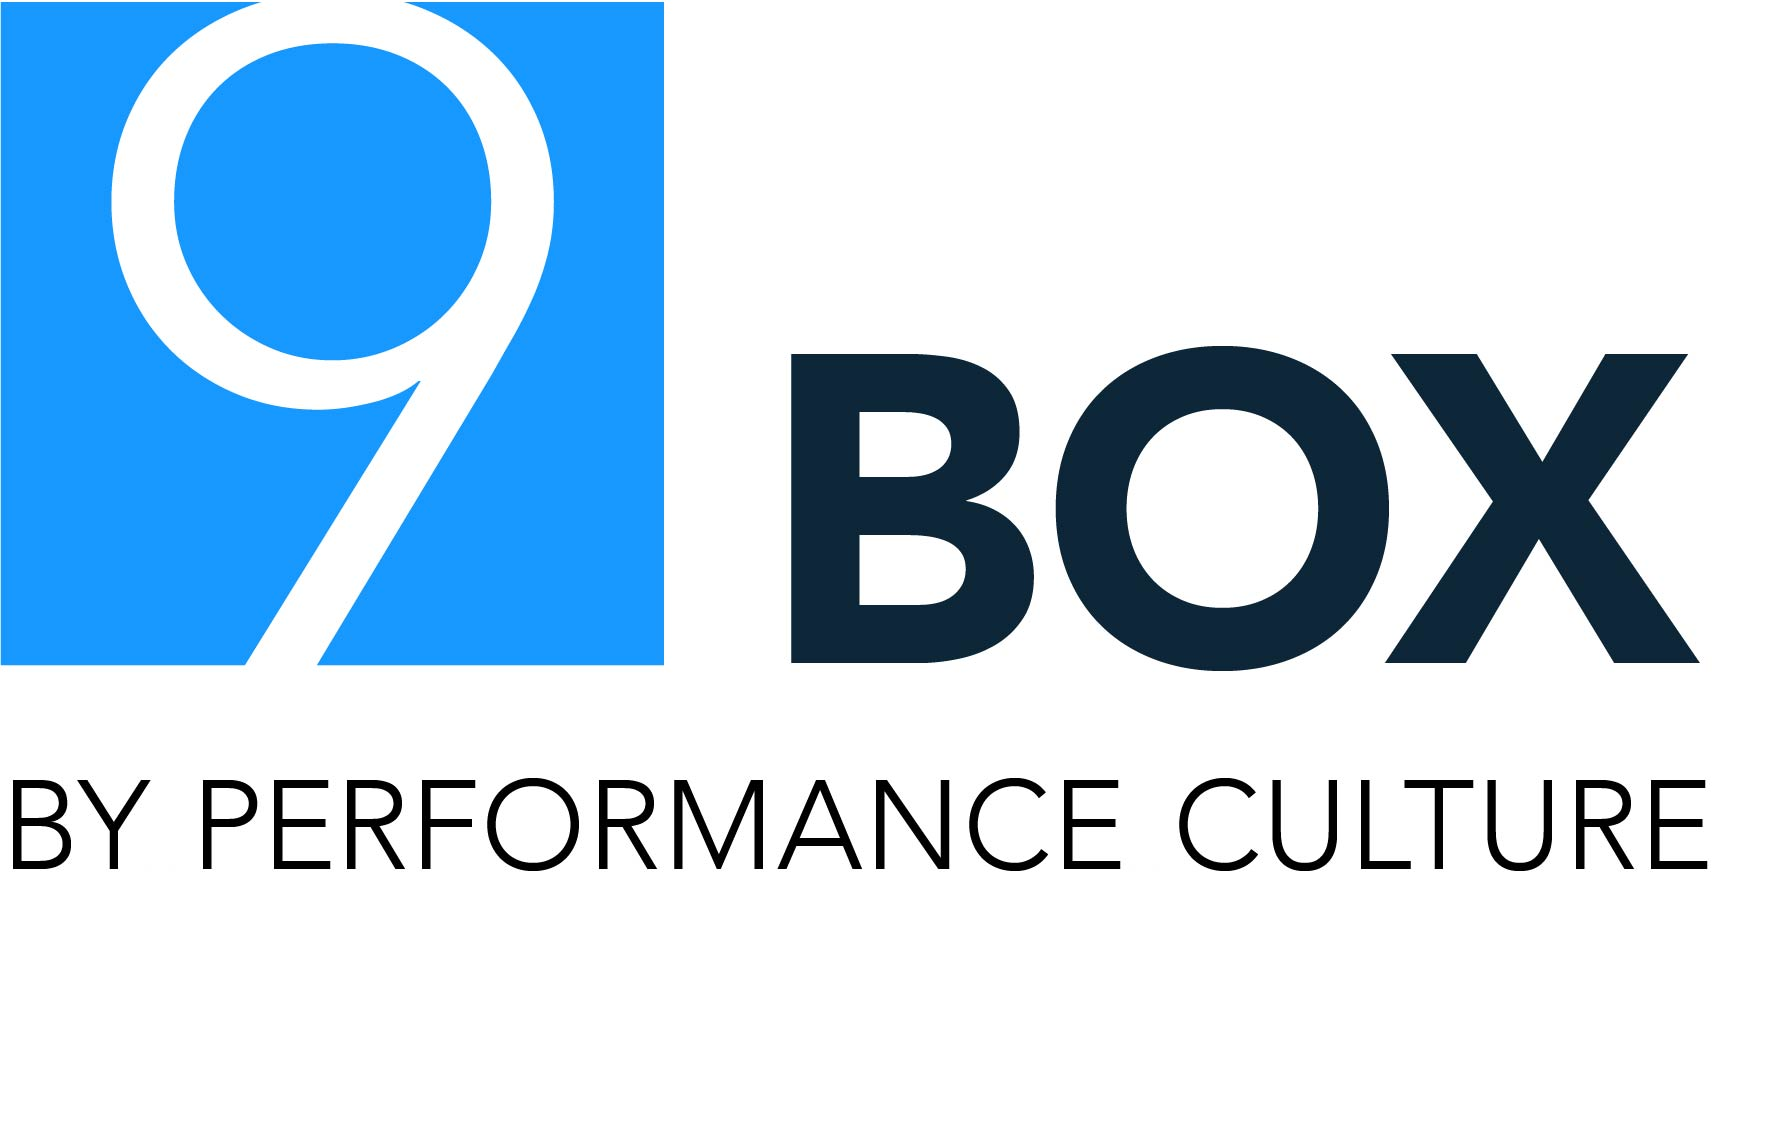 9-Box by Performance Culture